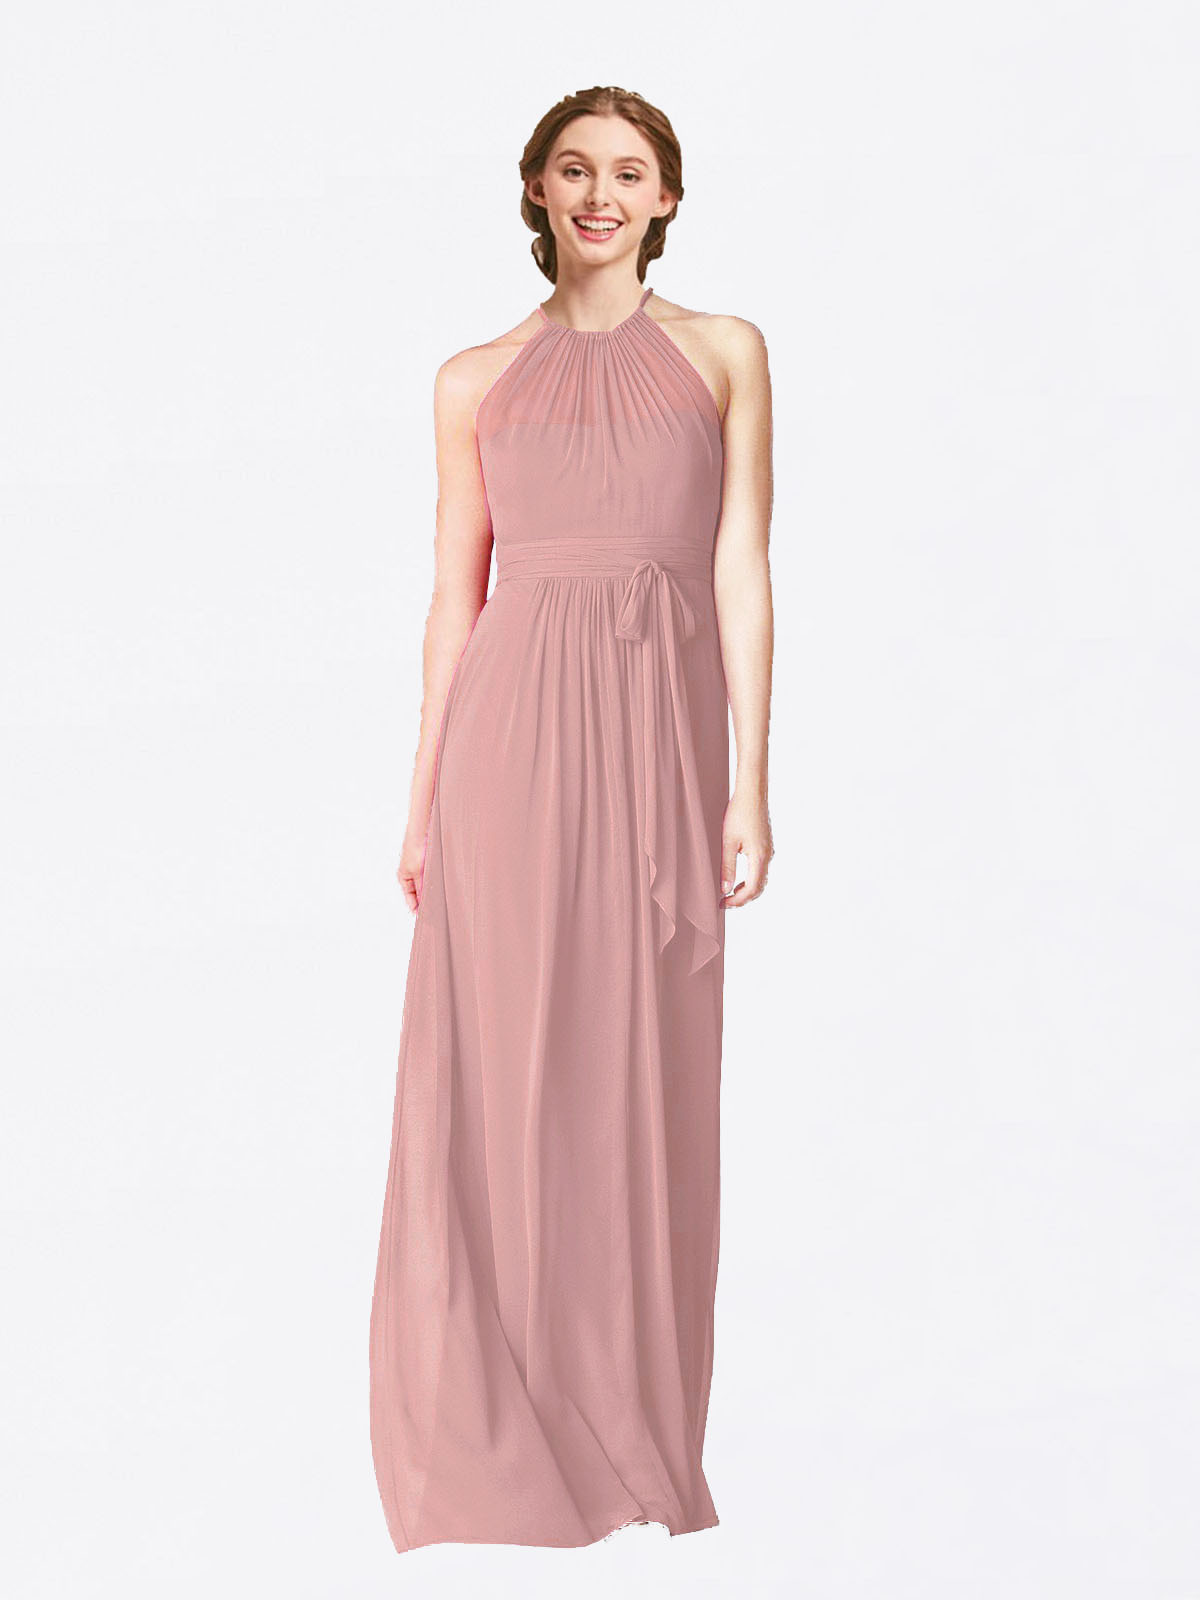 Long A-Line Halter Sleeveless Dusty Pink Chiffon Bridesmaid Dress Laura